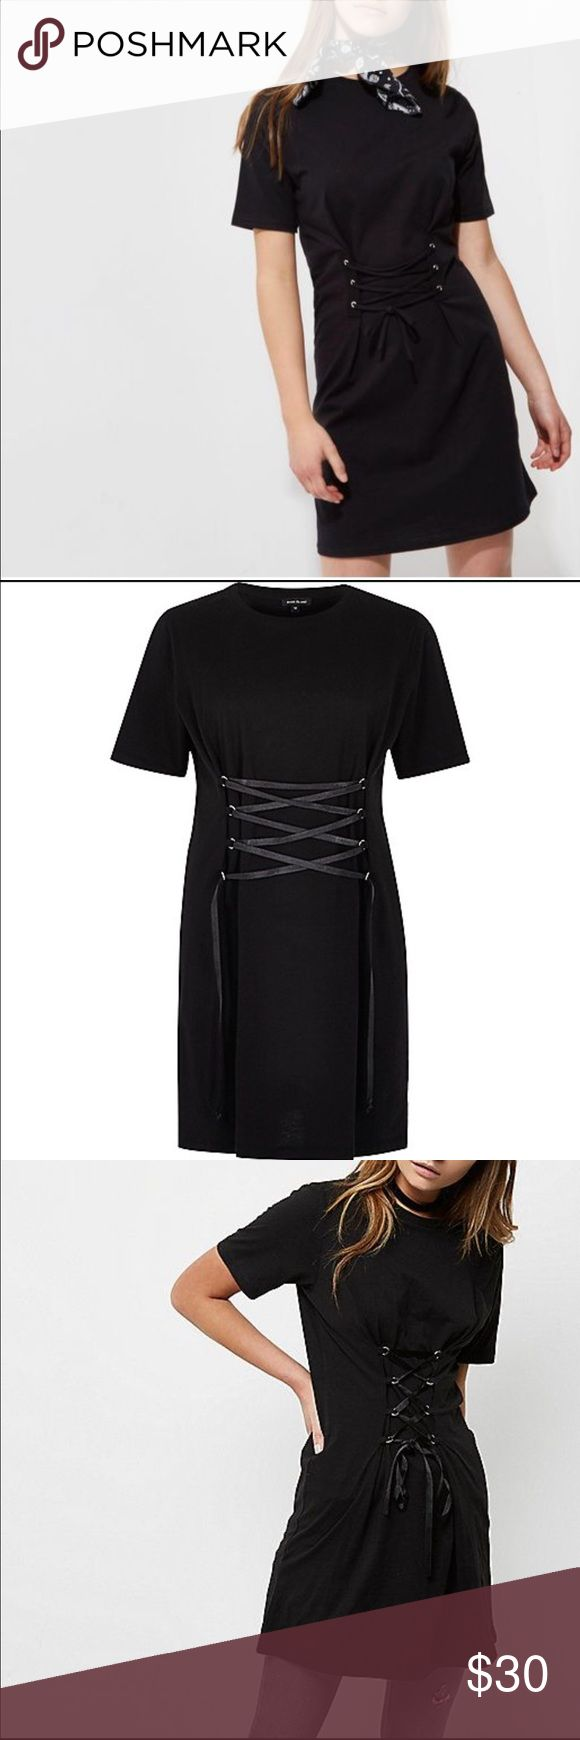 River Island black t-shirt dress w/ corset detail Brand new dress, never worn, without tags. River Island Dresses Mini